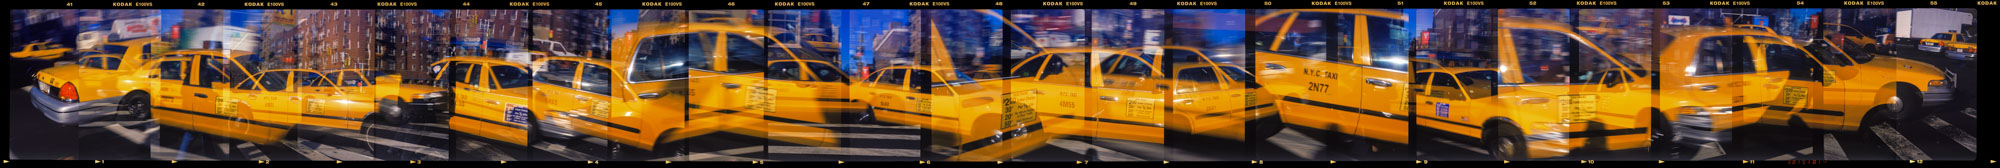 New York Taxi 1999